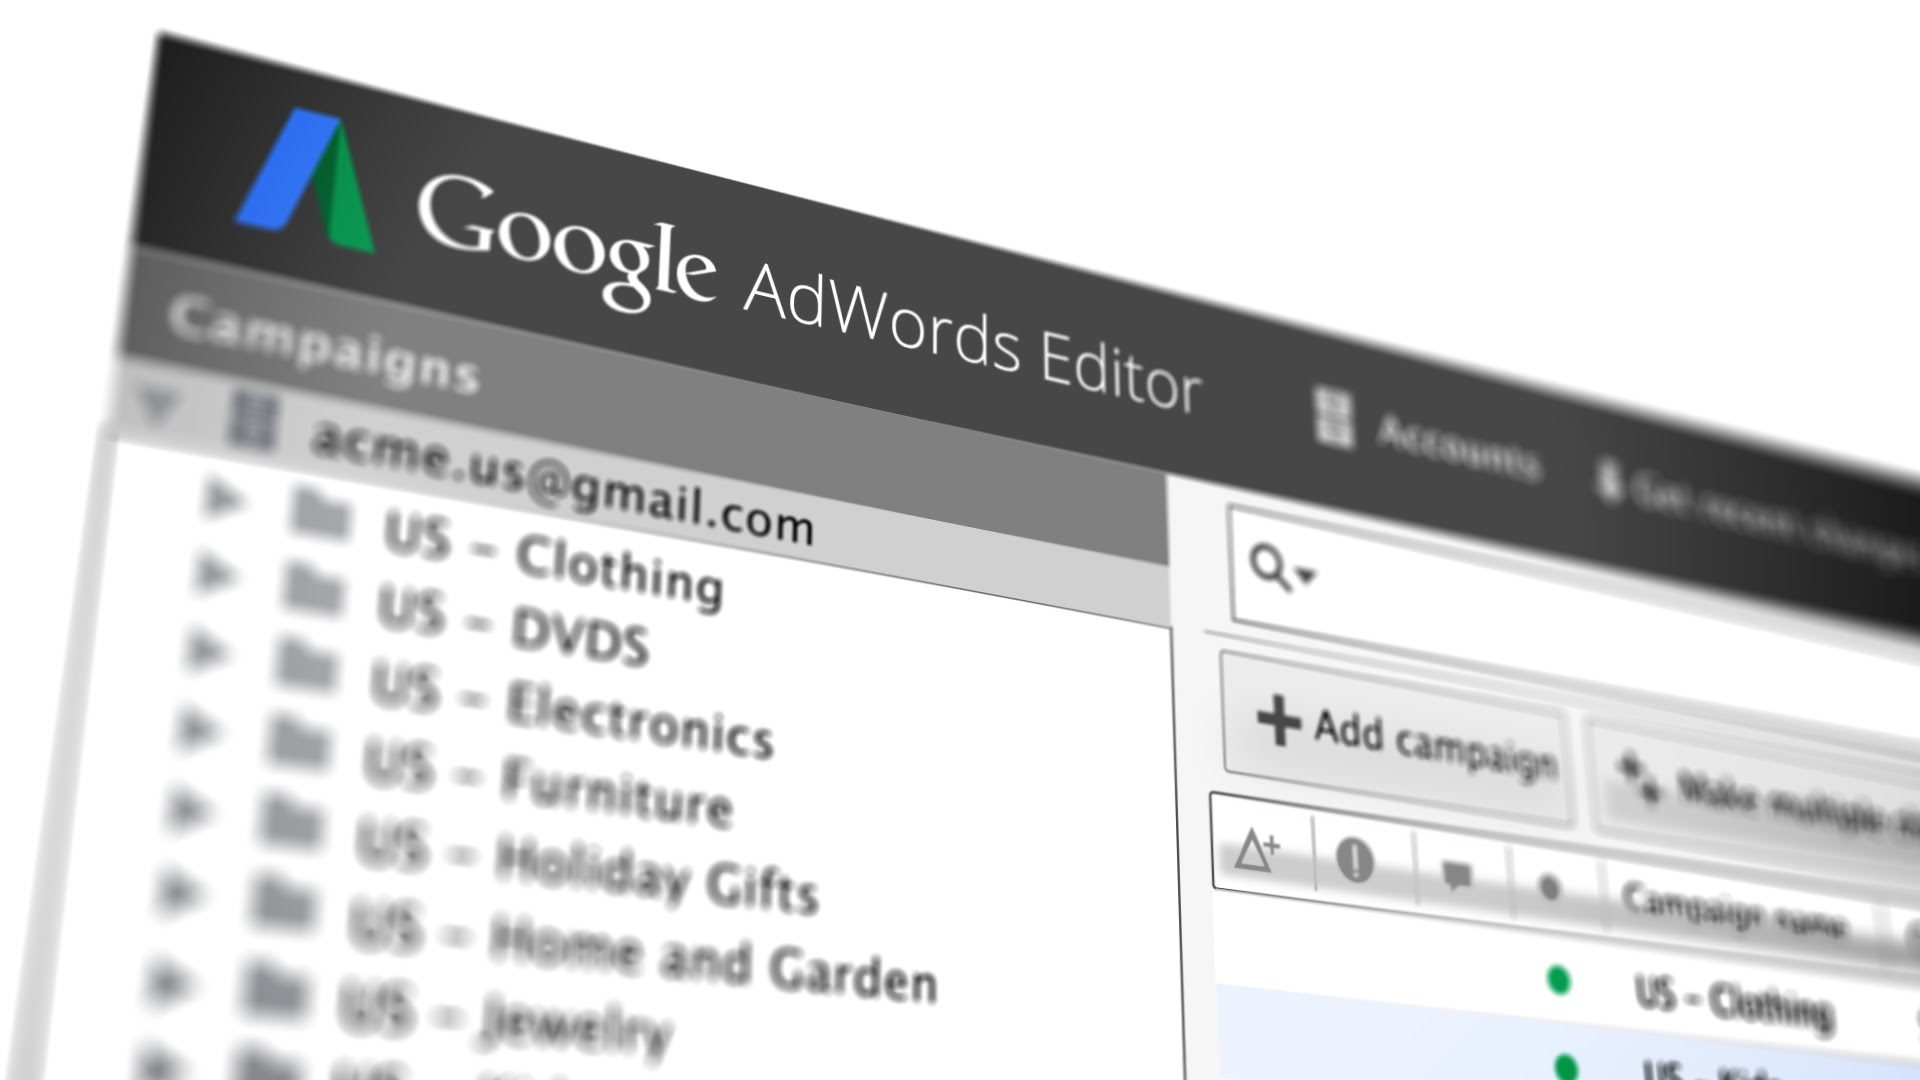 Google-Adwords-source-Adwords Youtube